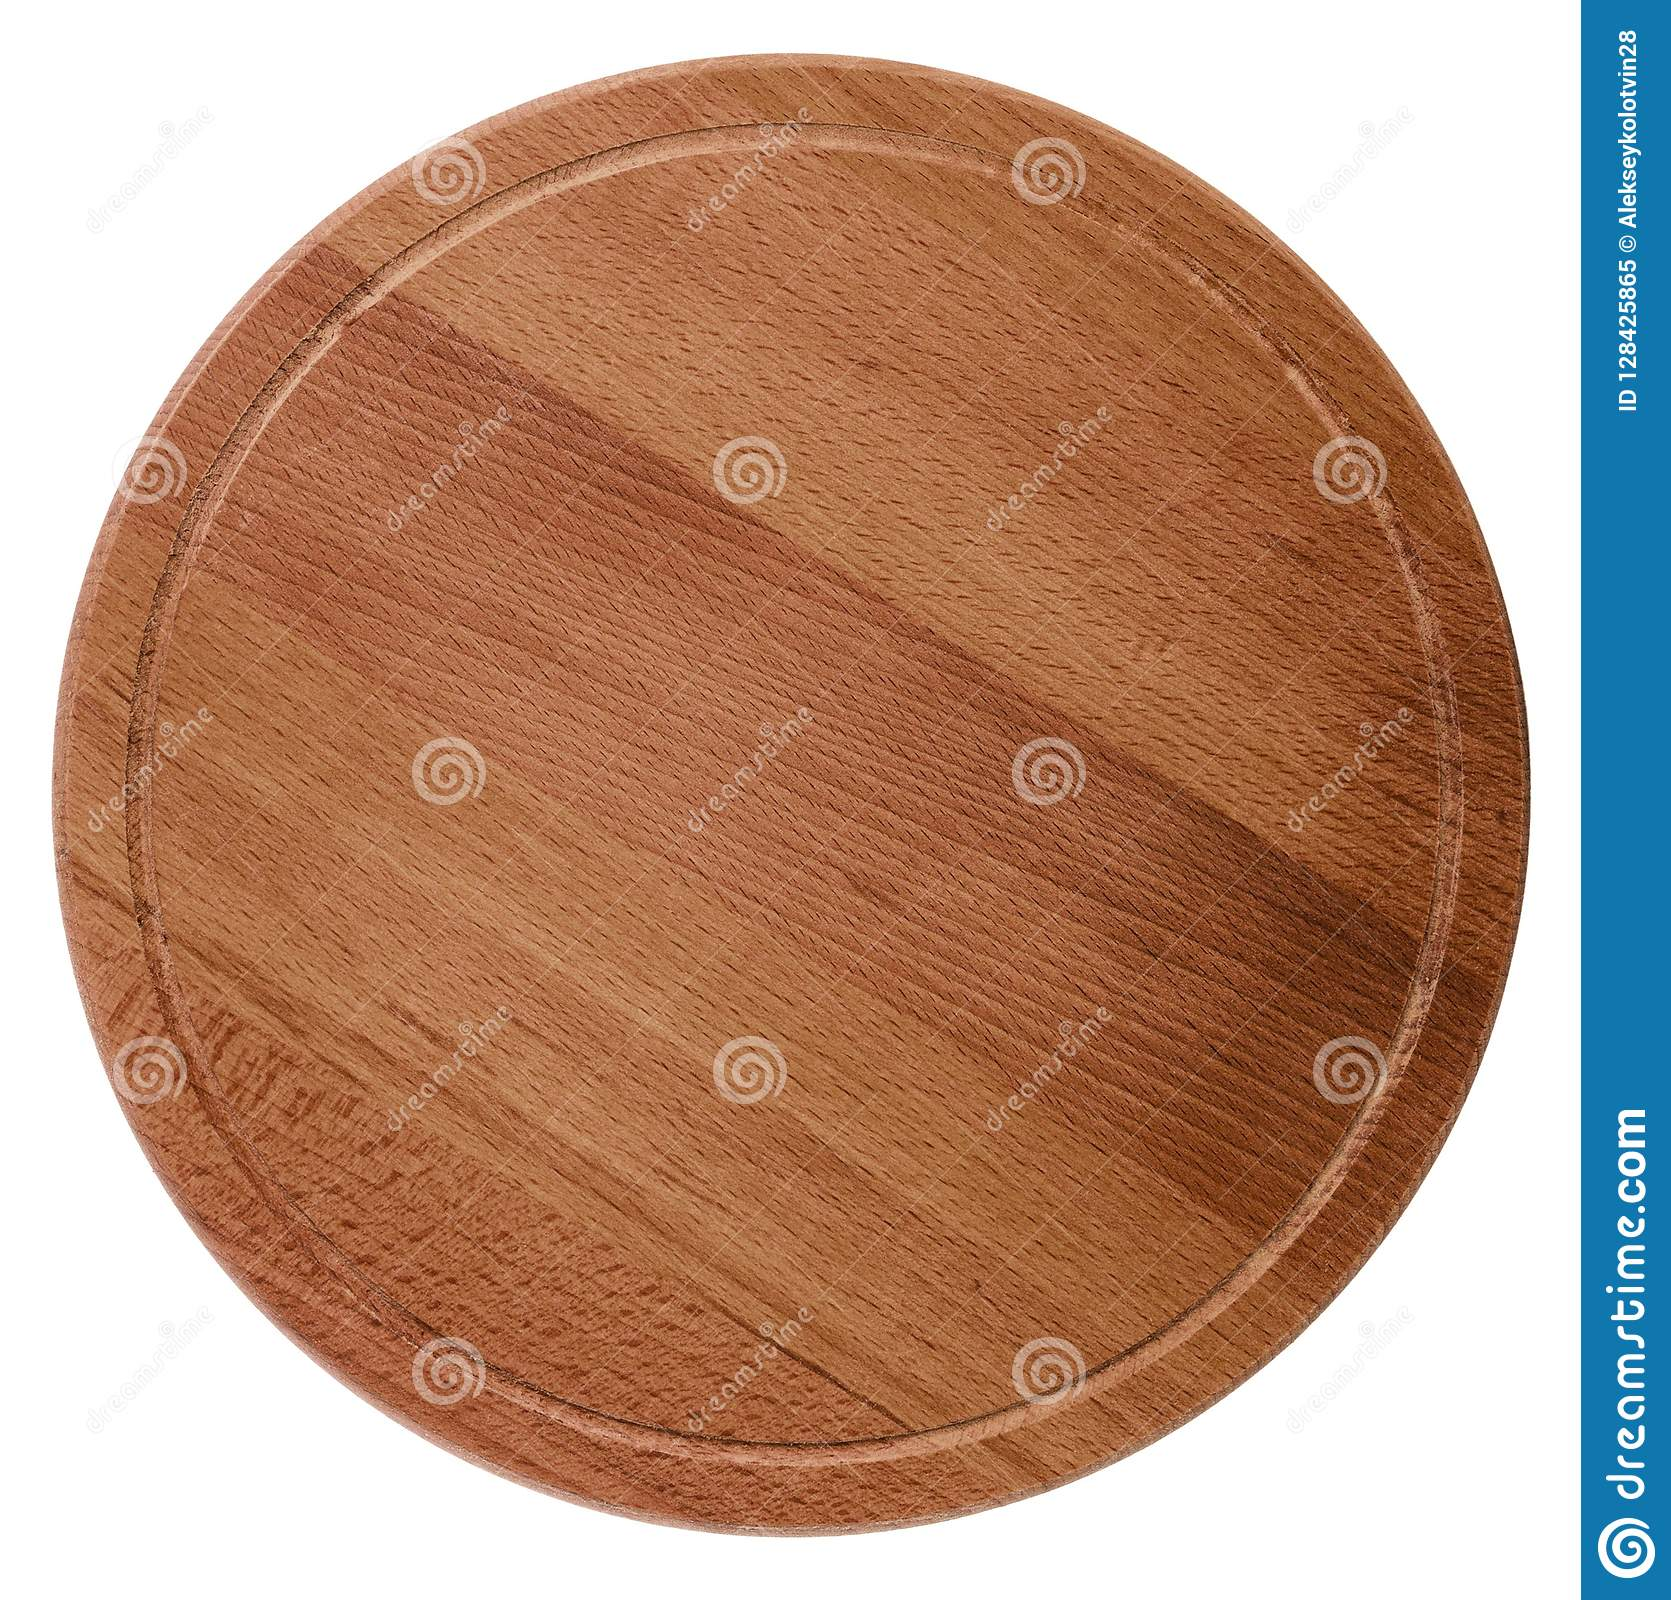 Round Wooden Cutting Board Isolated On White Background Stock Image Image Of Preparation Food 128425865